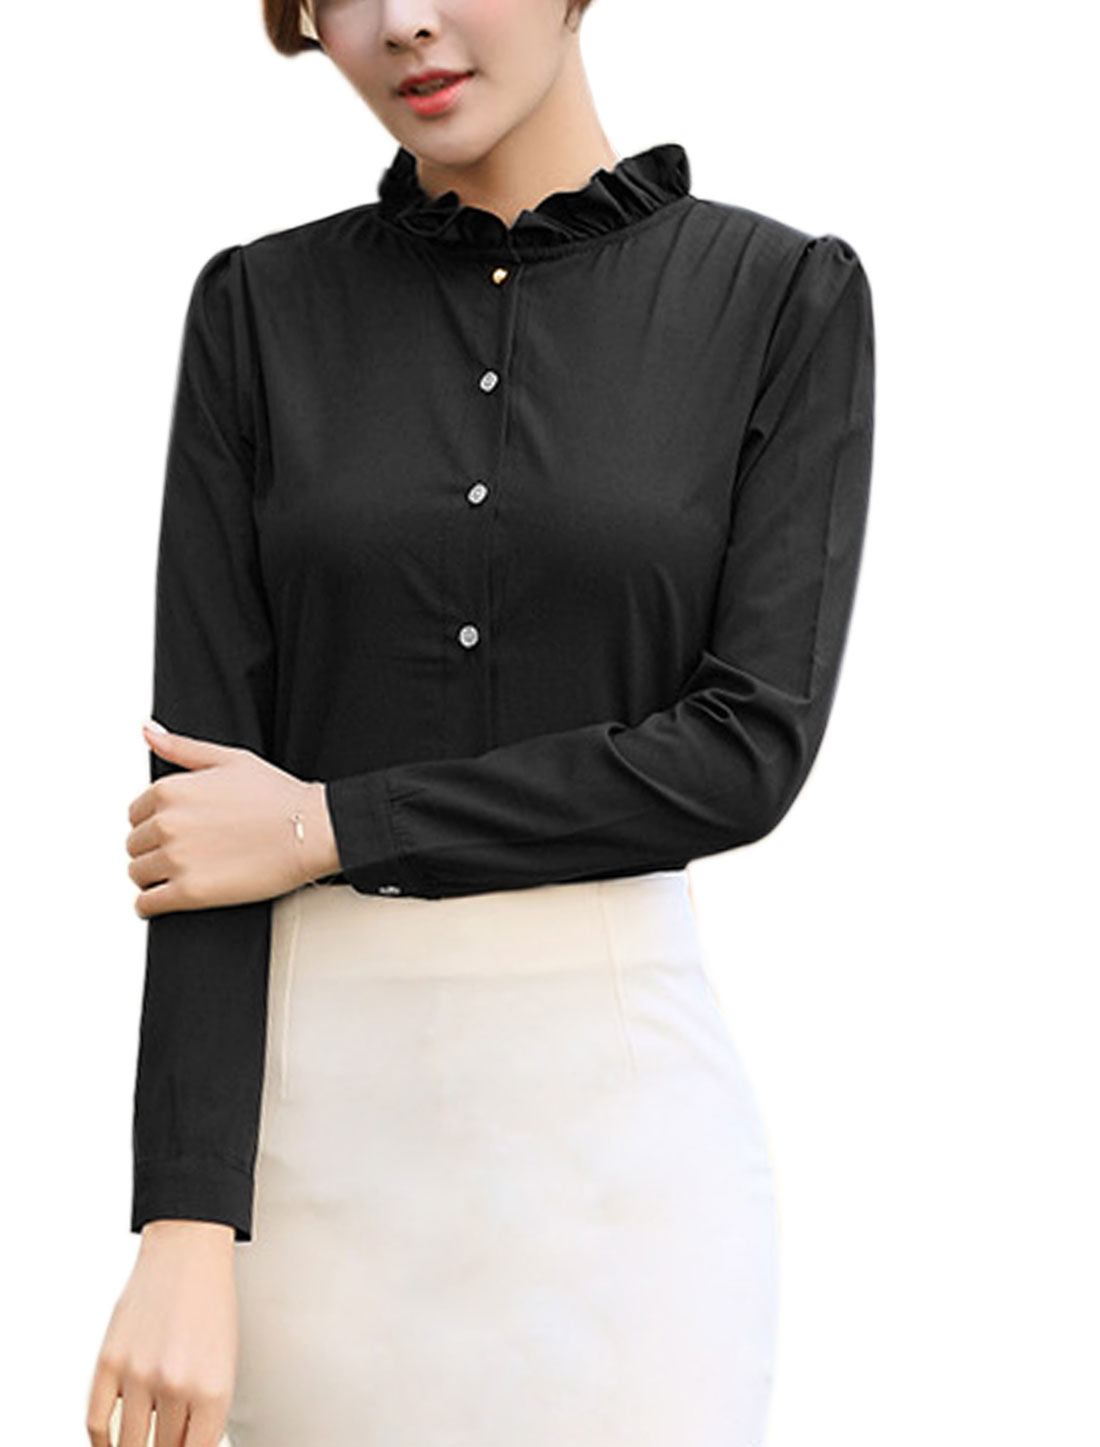 Ladies Ruffled Collar Slim Fit Buttoned Shirt Black M